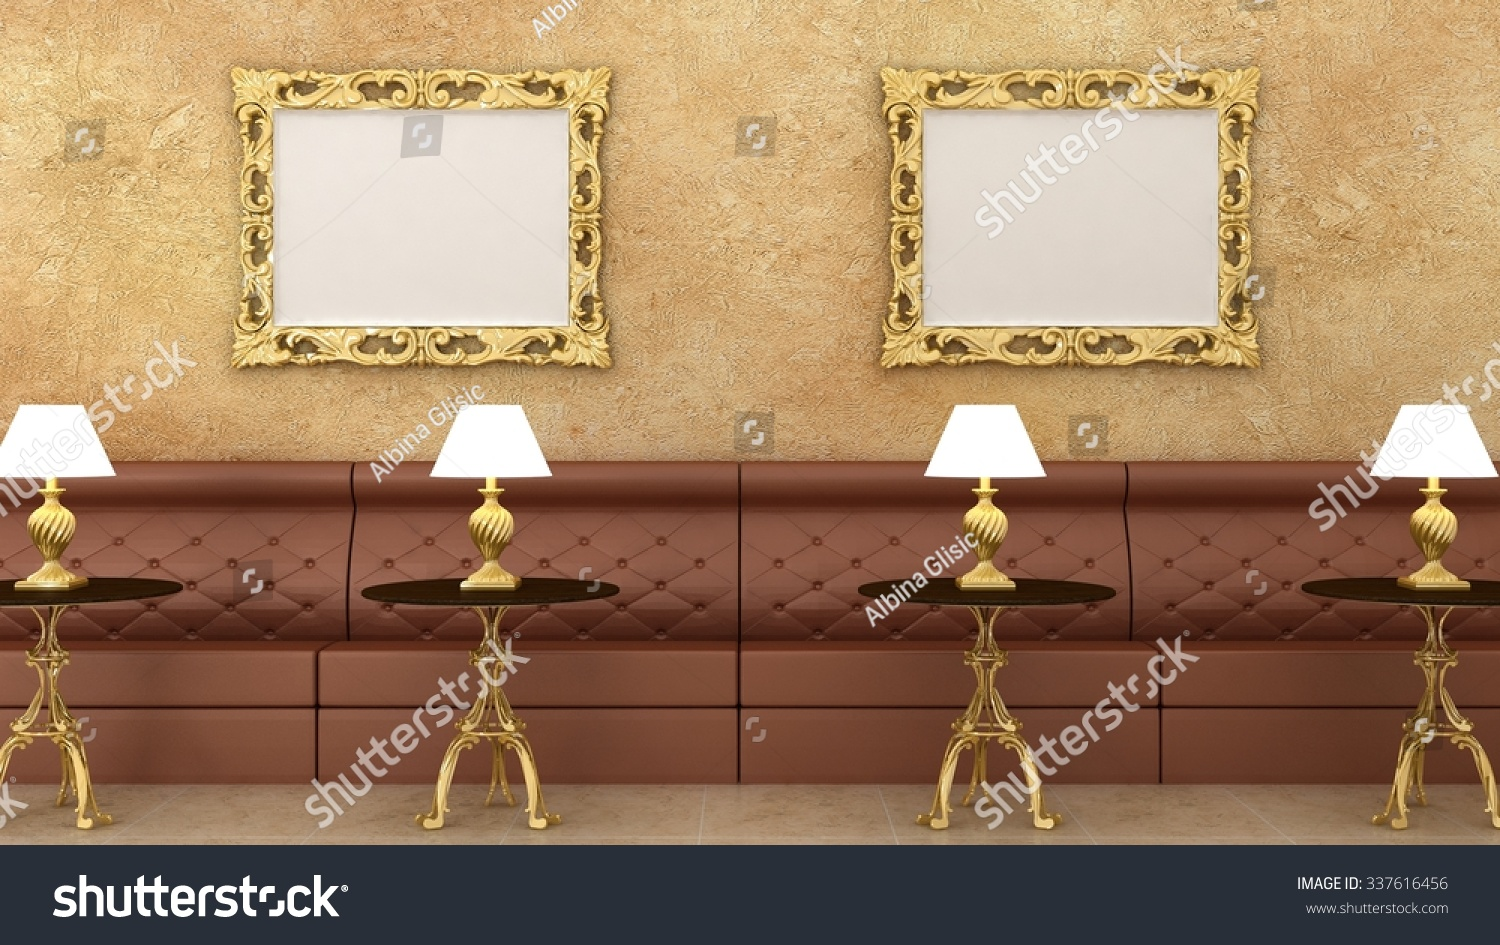 empty golden picture frames classic cafe stock illustration